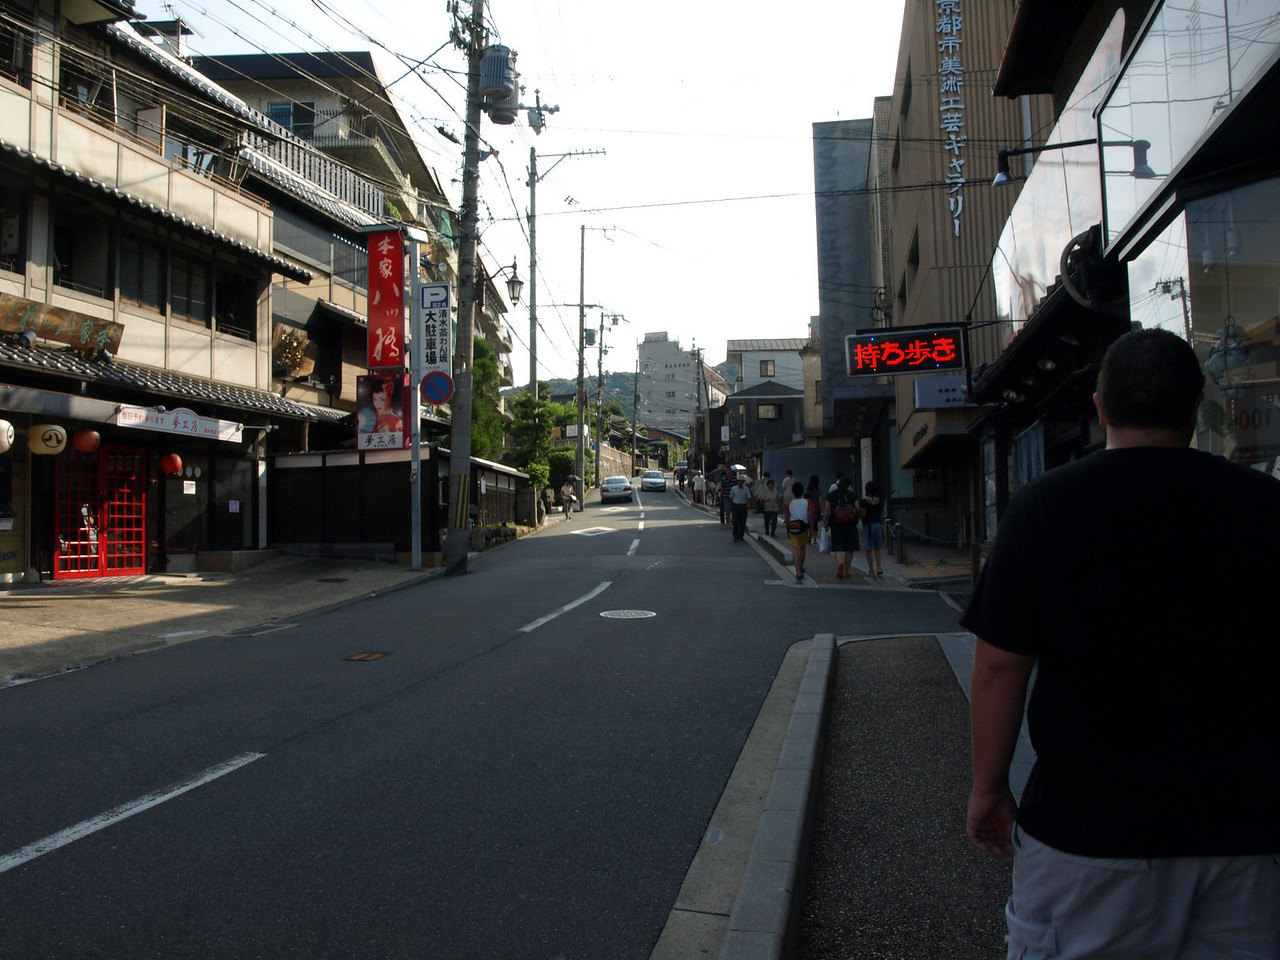 We continued our hike up Gojizaka Street. For the moment, the temperature was still mild, but we knew it would soon get brutally hot.